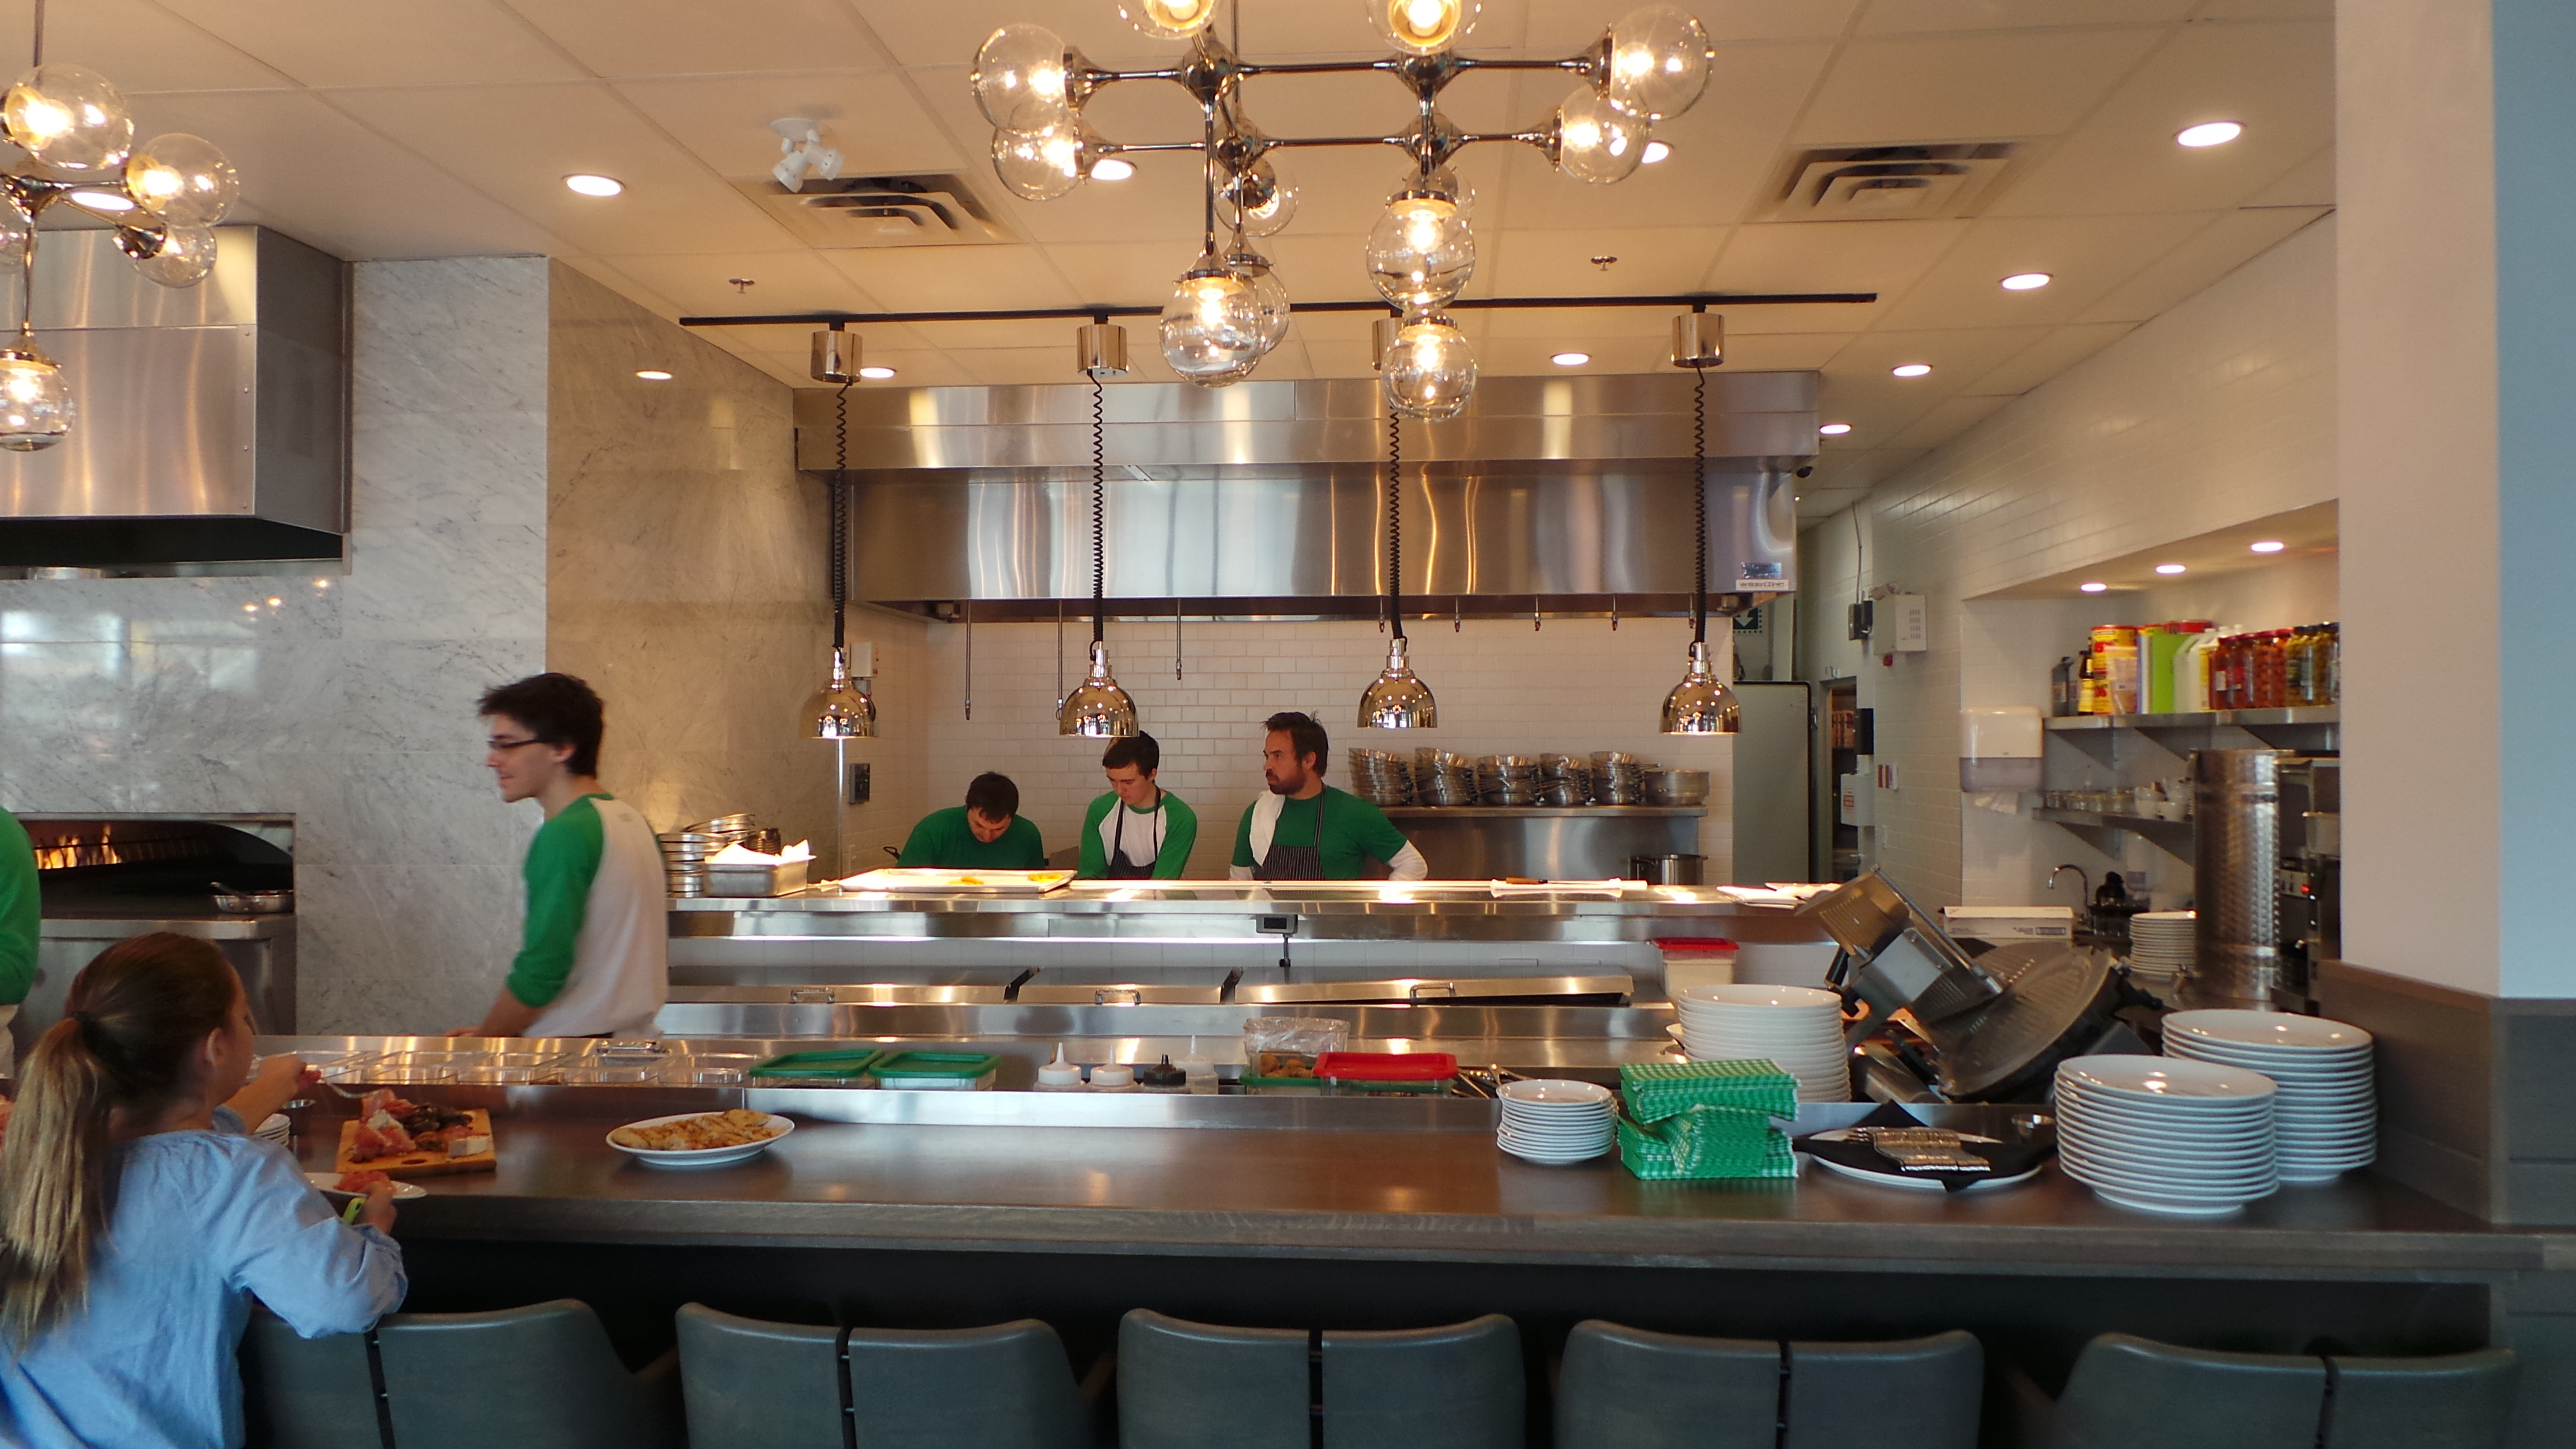 Bocce_Kitchen_Oven_Calgary